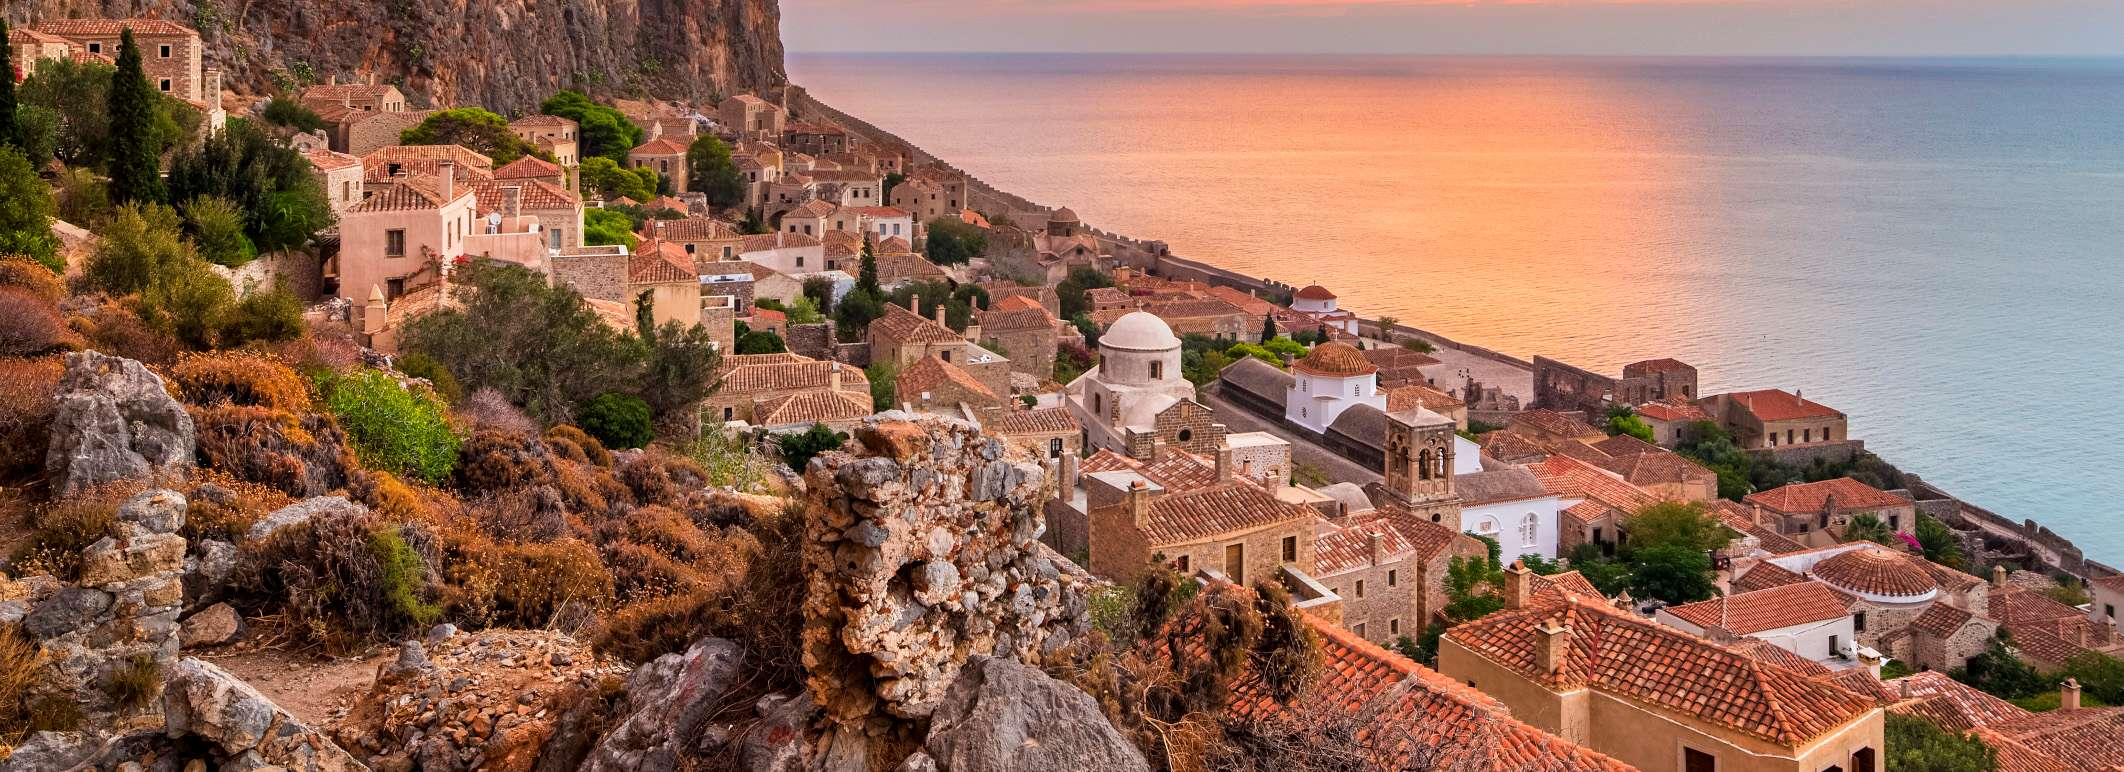 Red Sky in the Morning above the Old Town of Monemvasia, Laconia, Peloponnese, Greece